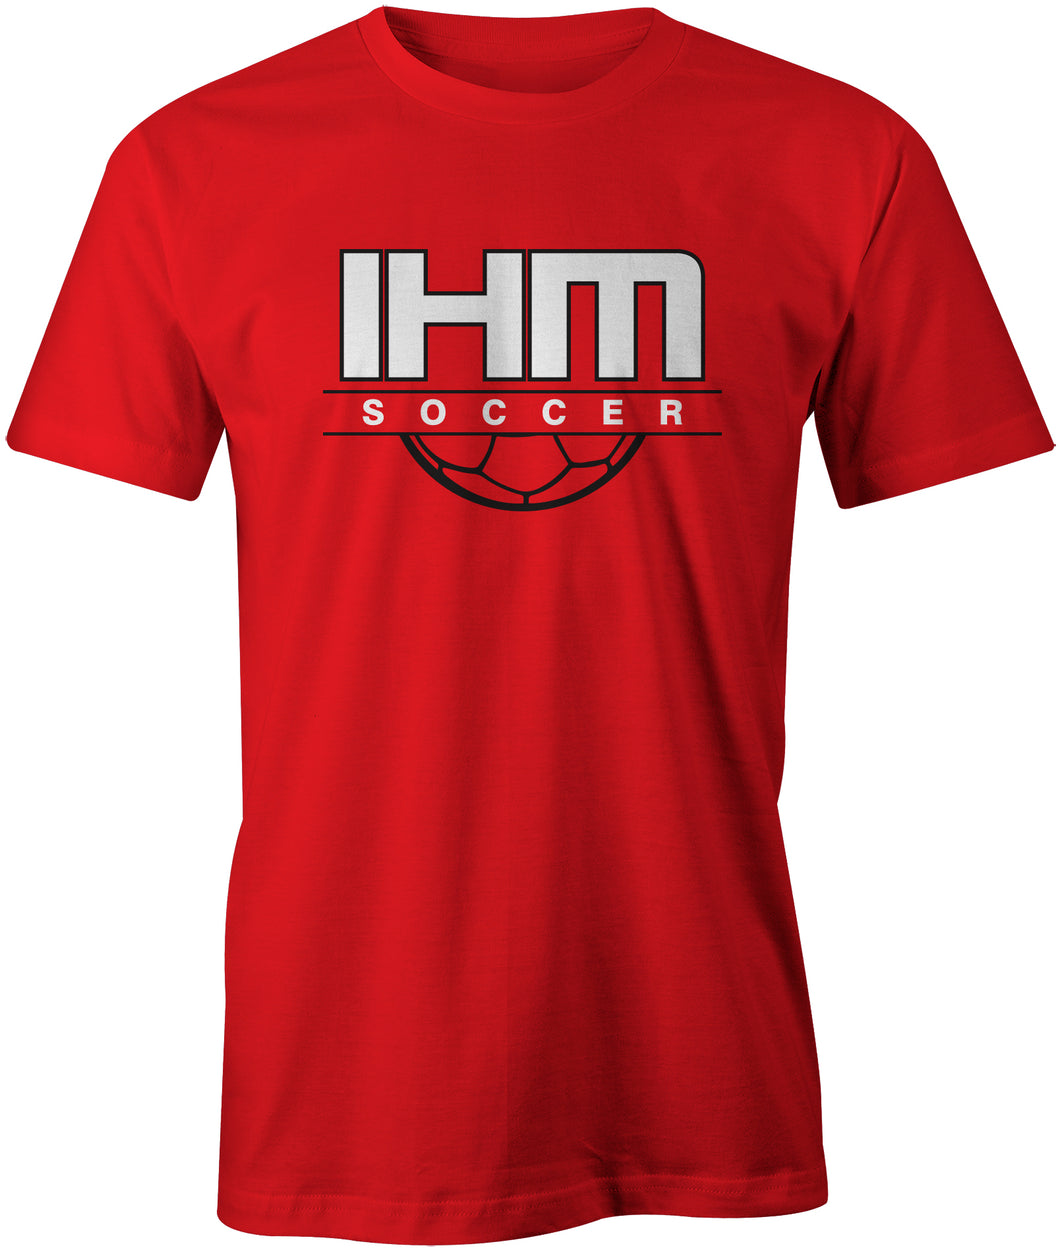 Red Soccer T-Shirt